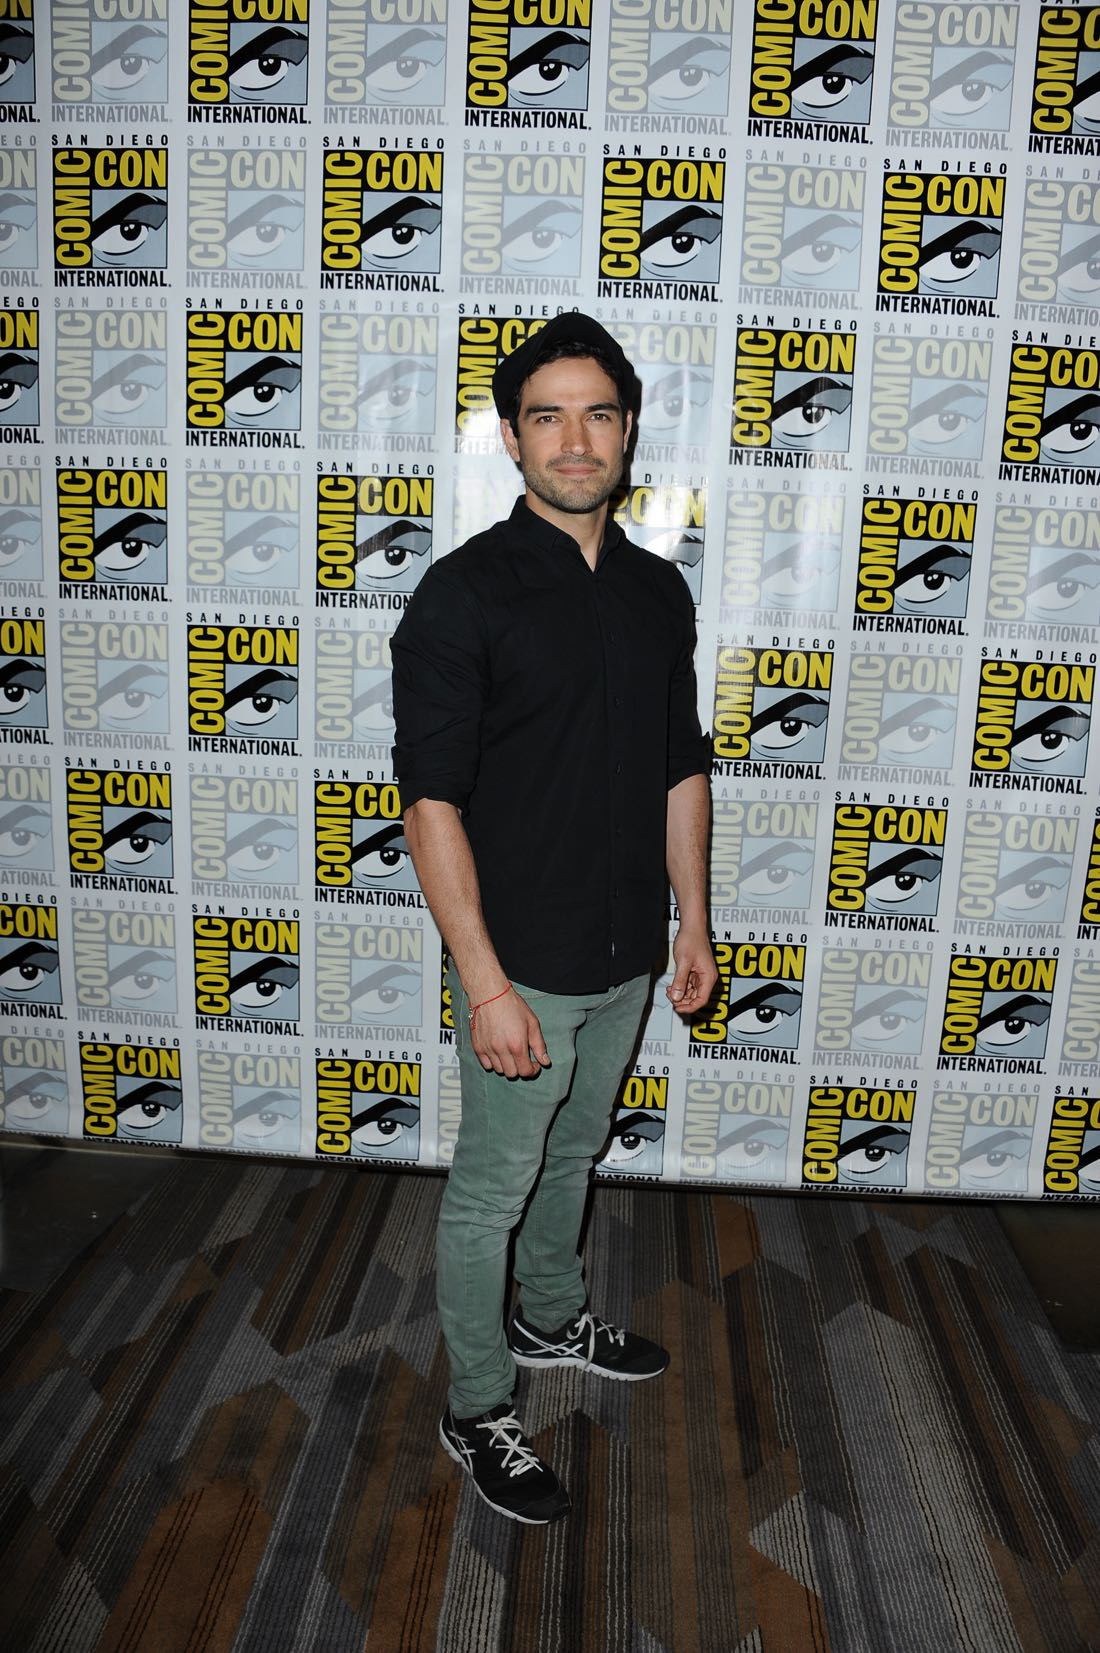 FOX FANFARE AT SAN DIEGO COMIC-CON © 2016: THE EXORCIST cast member Alfonso Herrera during THE EXORCIST press room on Friday, July 22 at the FOX FANFARE AT SAN DIEGO COMIC-CON © 2016. CR: Scott Kirkland/FOX © 2016 FOX BROADCASTING